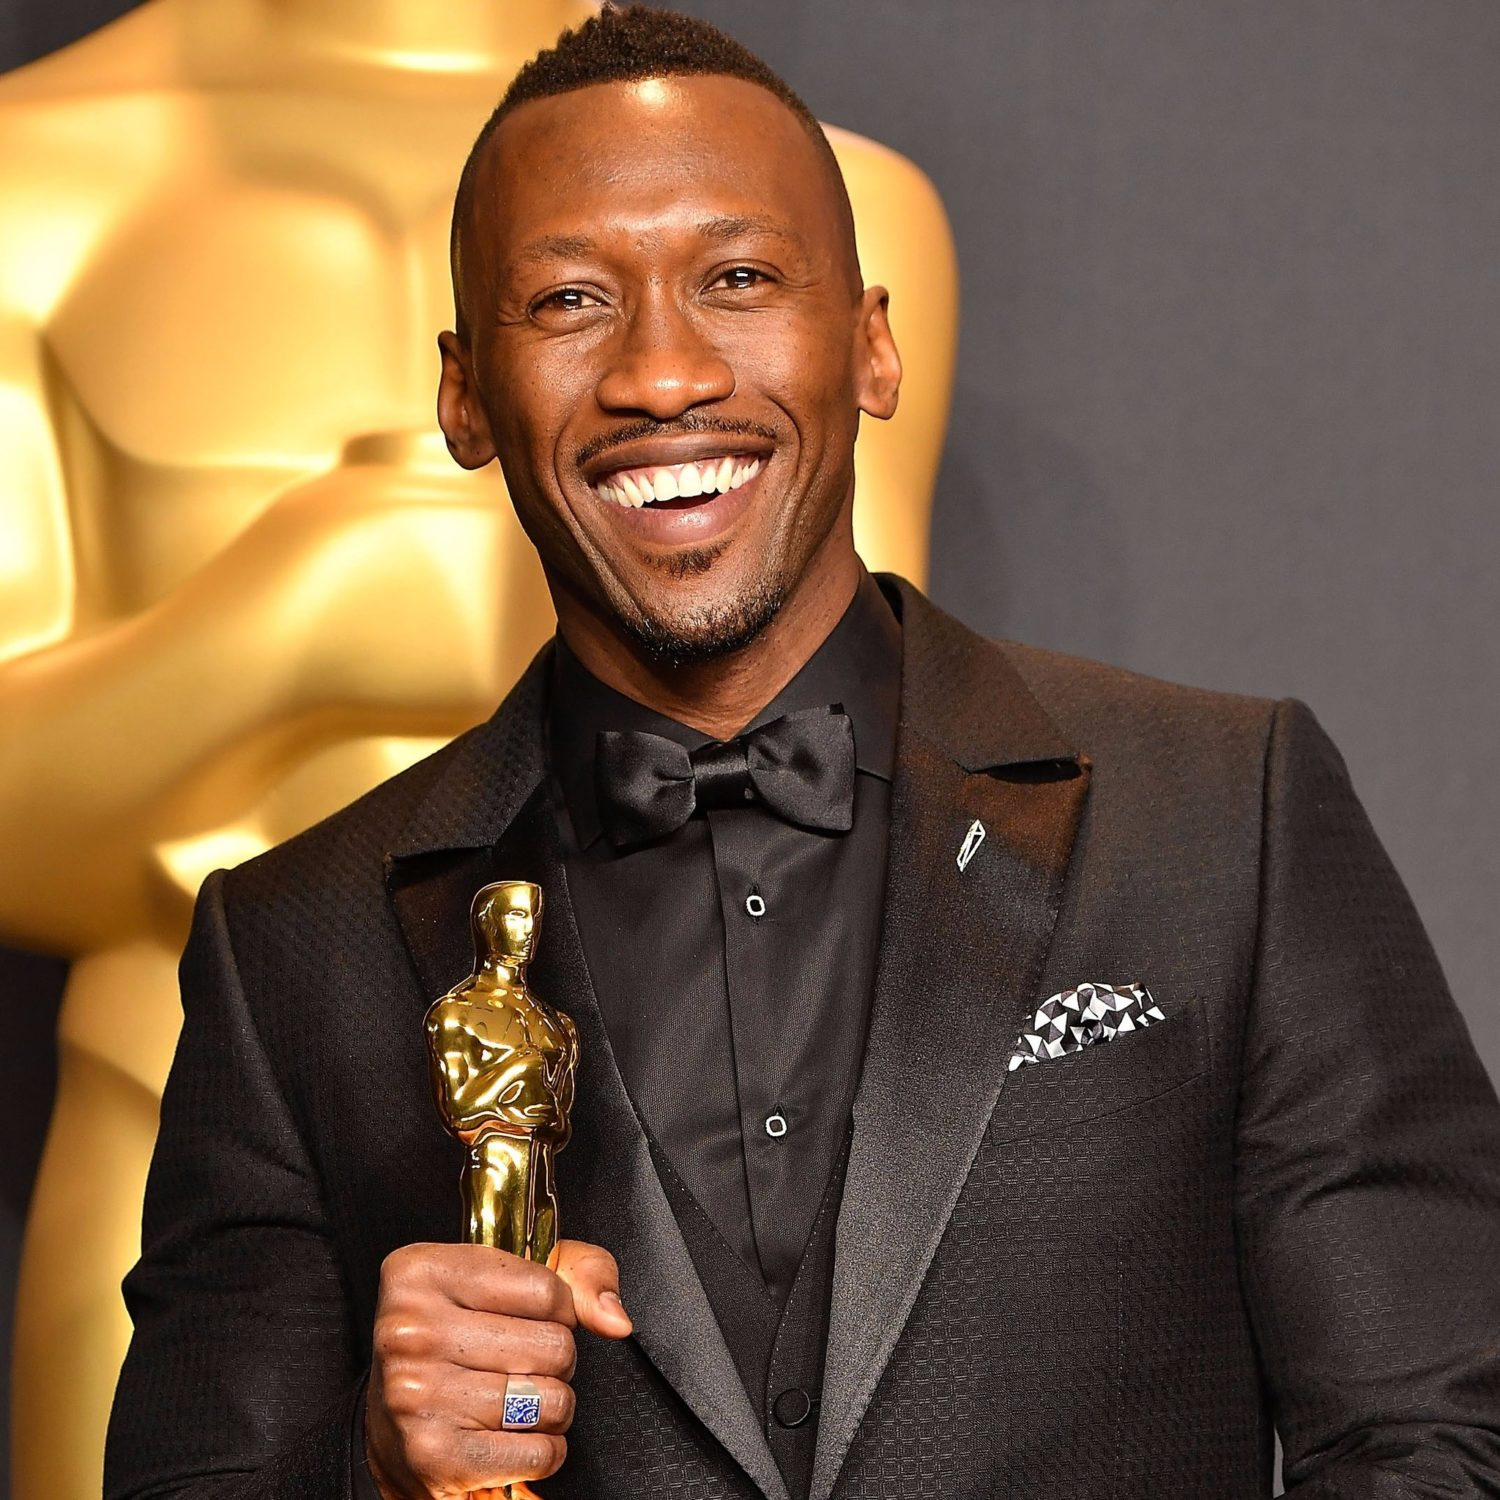 Mahershala Ali Confirmed For 'True Detective' Season 3